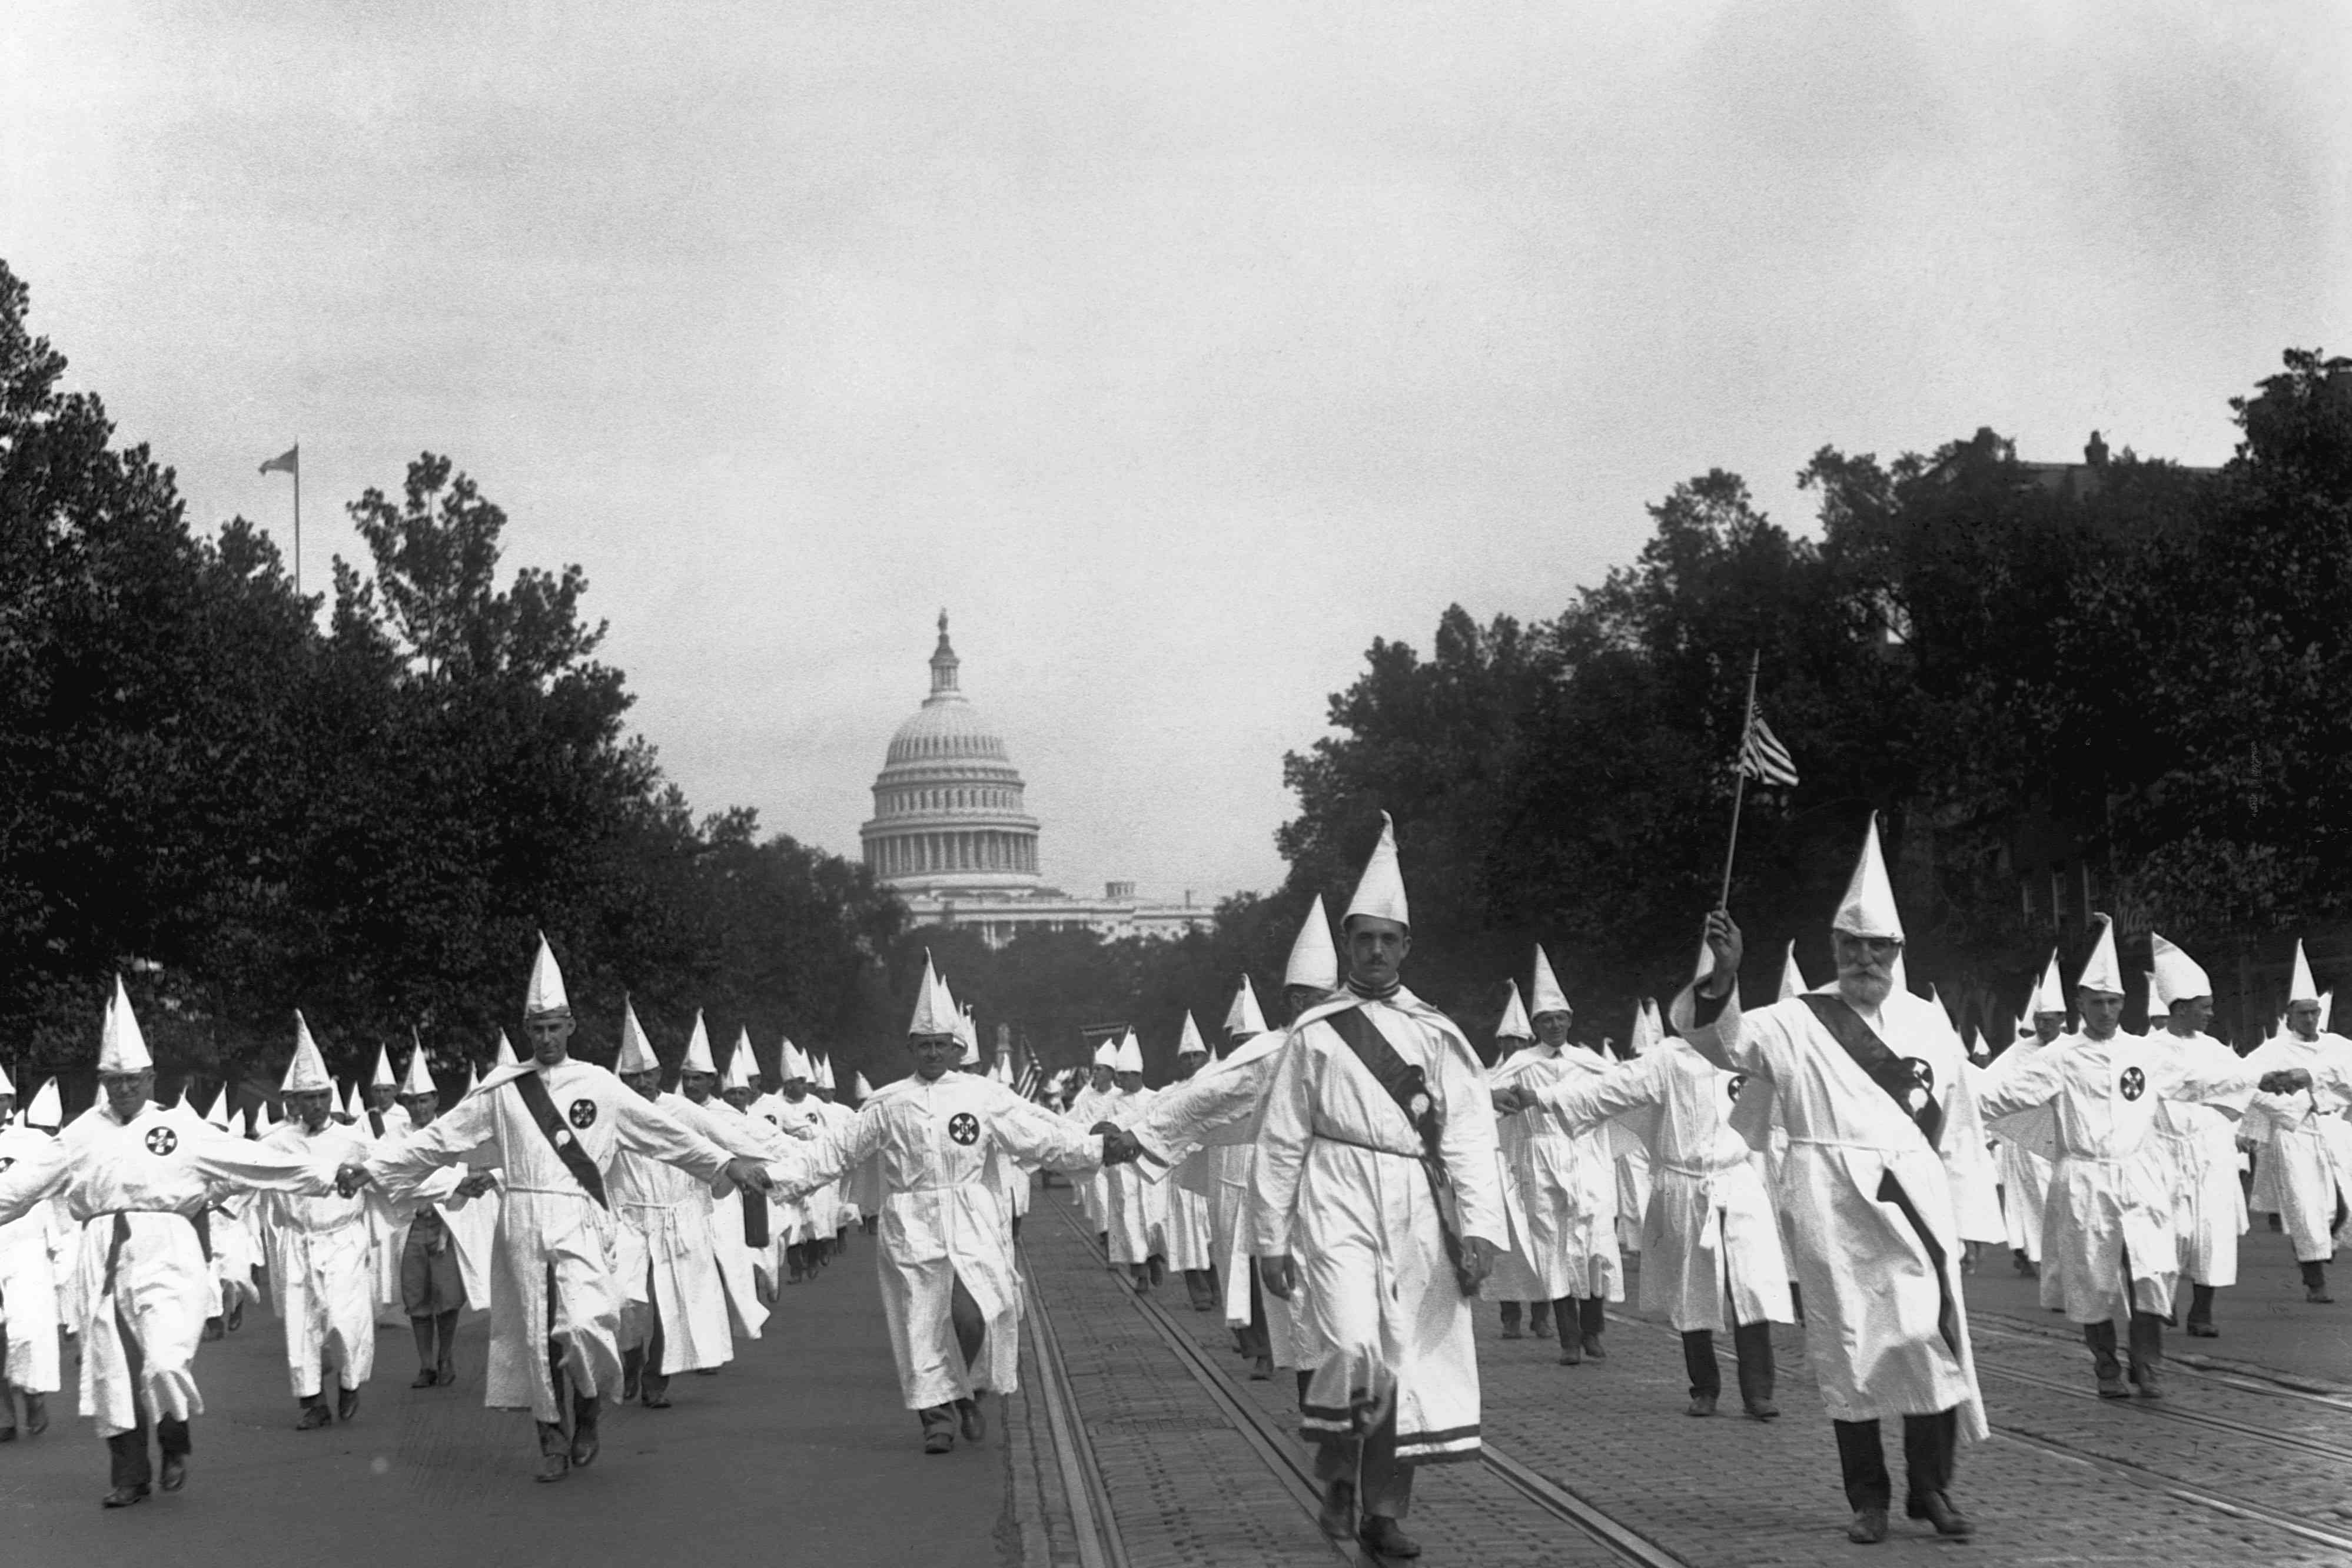 Ku Klux Klan members in hoods and robes walking down the street with the U.S. Capitol Building visible on the horizon